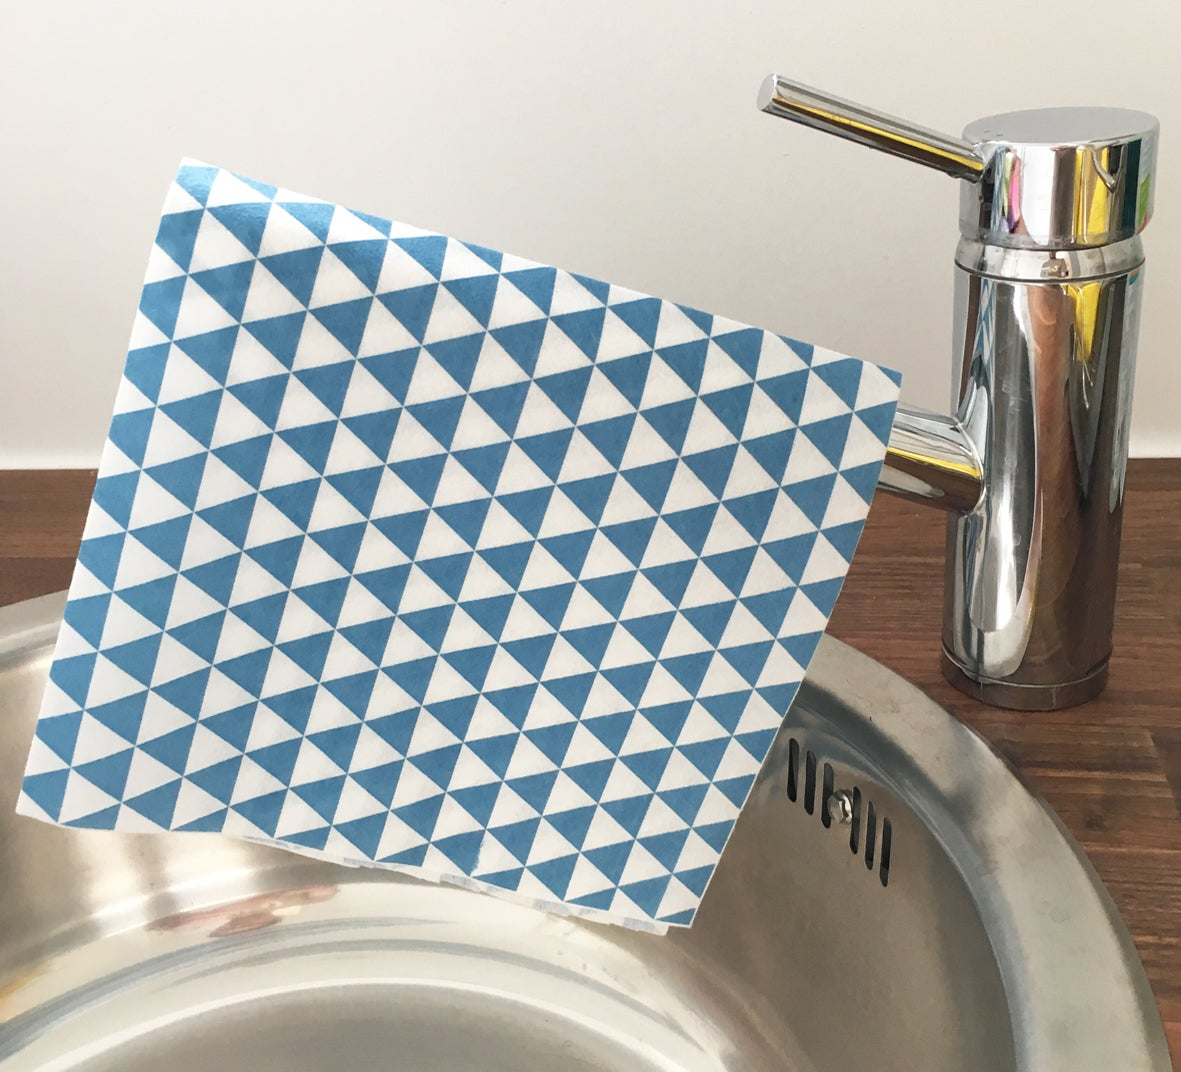 Image of Sustainable Blue-Triangle Ultra Absorbent Cloths - 24 cloths